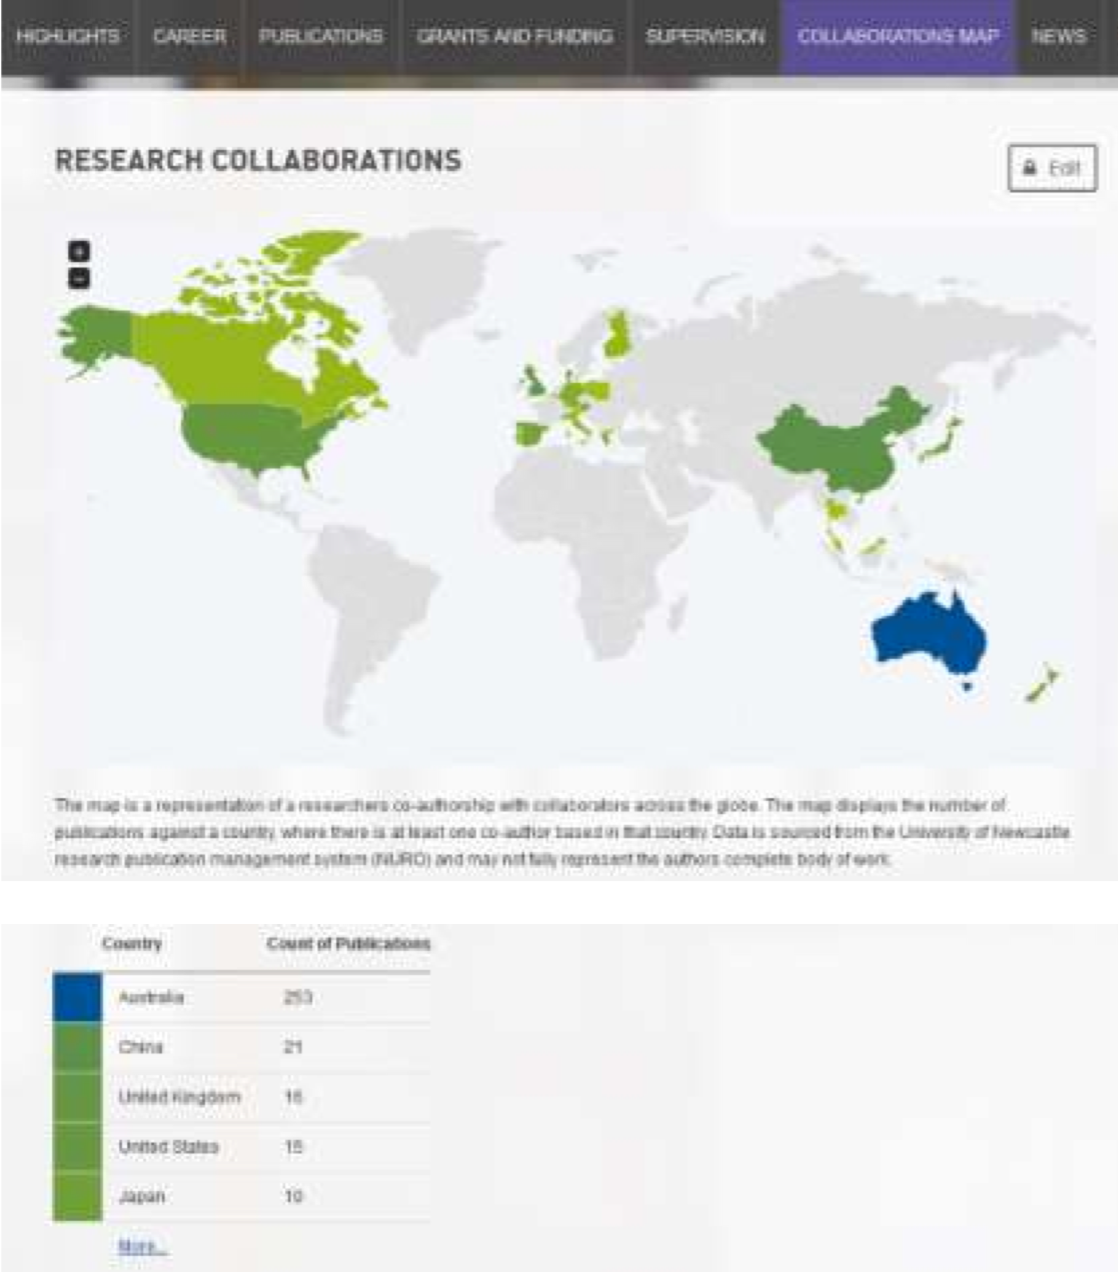 Collaborations Map